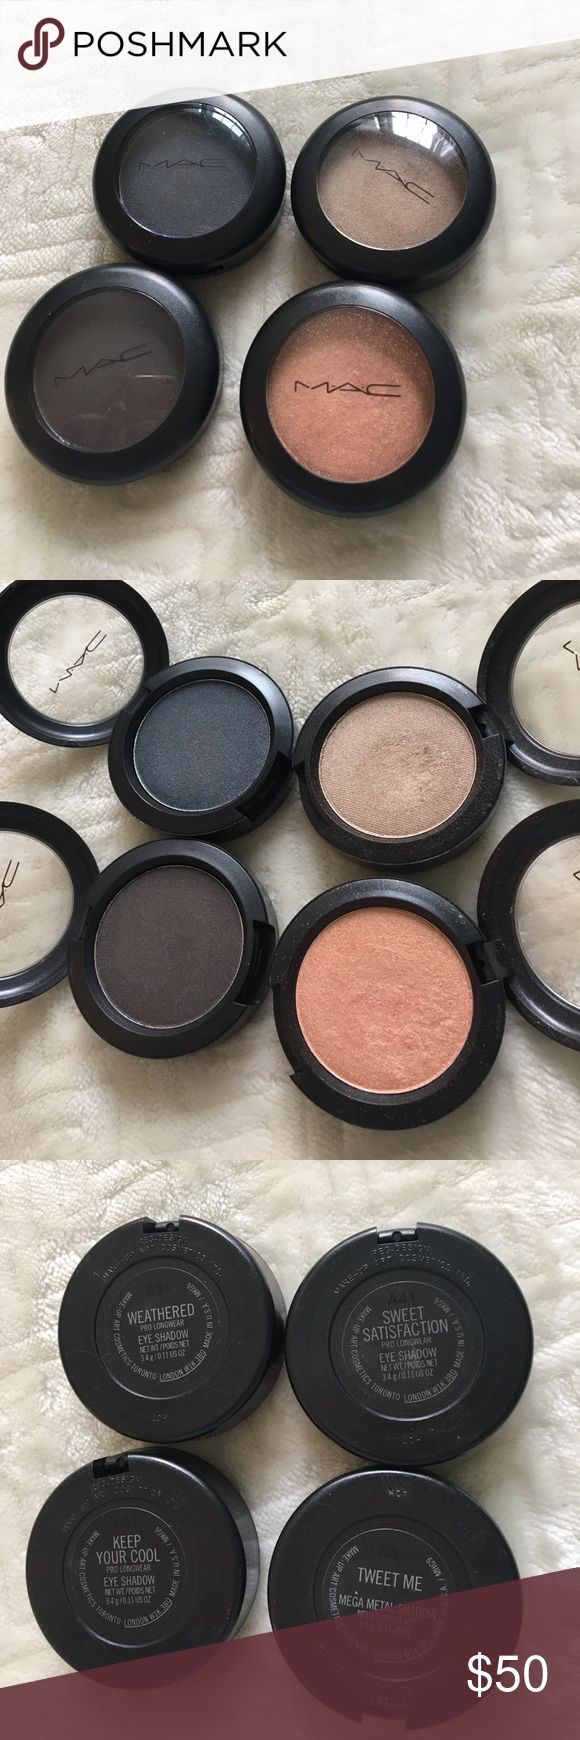 MAC pro longwear shadows Four pro longwear shadows used lightly. Comes with free makeup bad and samples MAC Cosmetics Makeup Eyeshadow